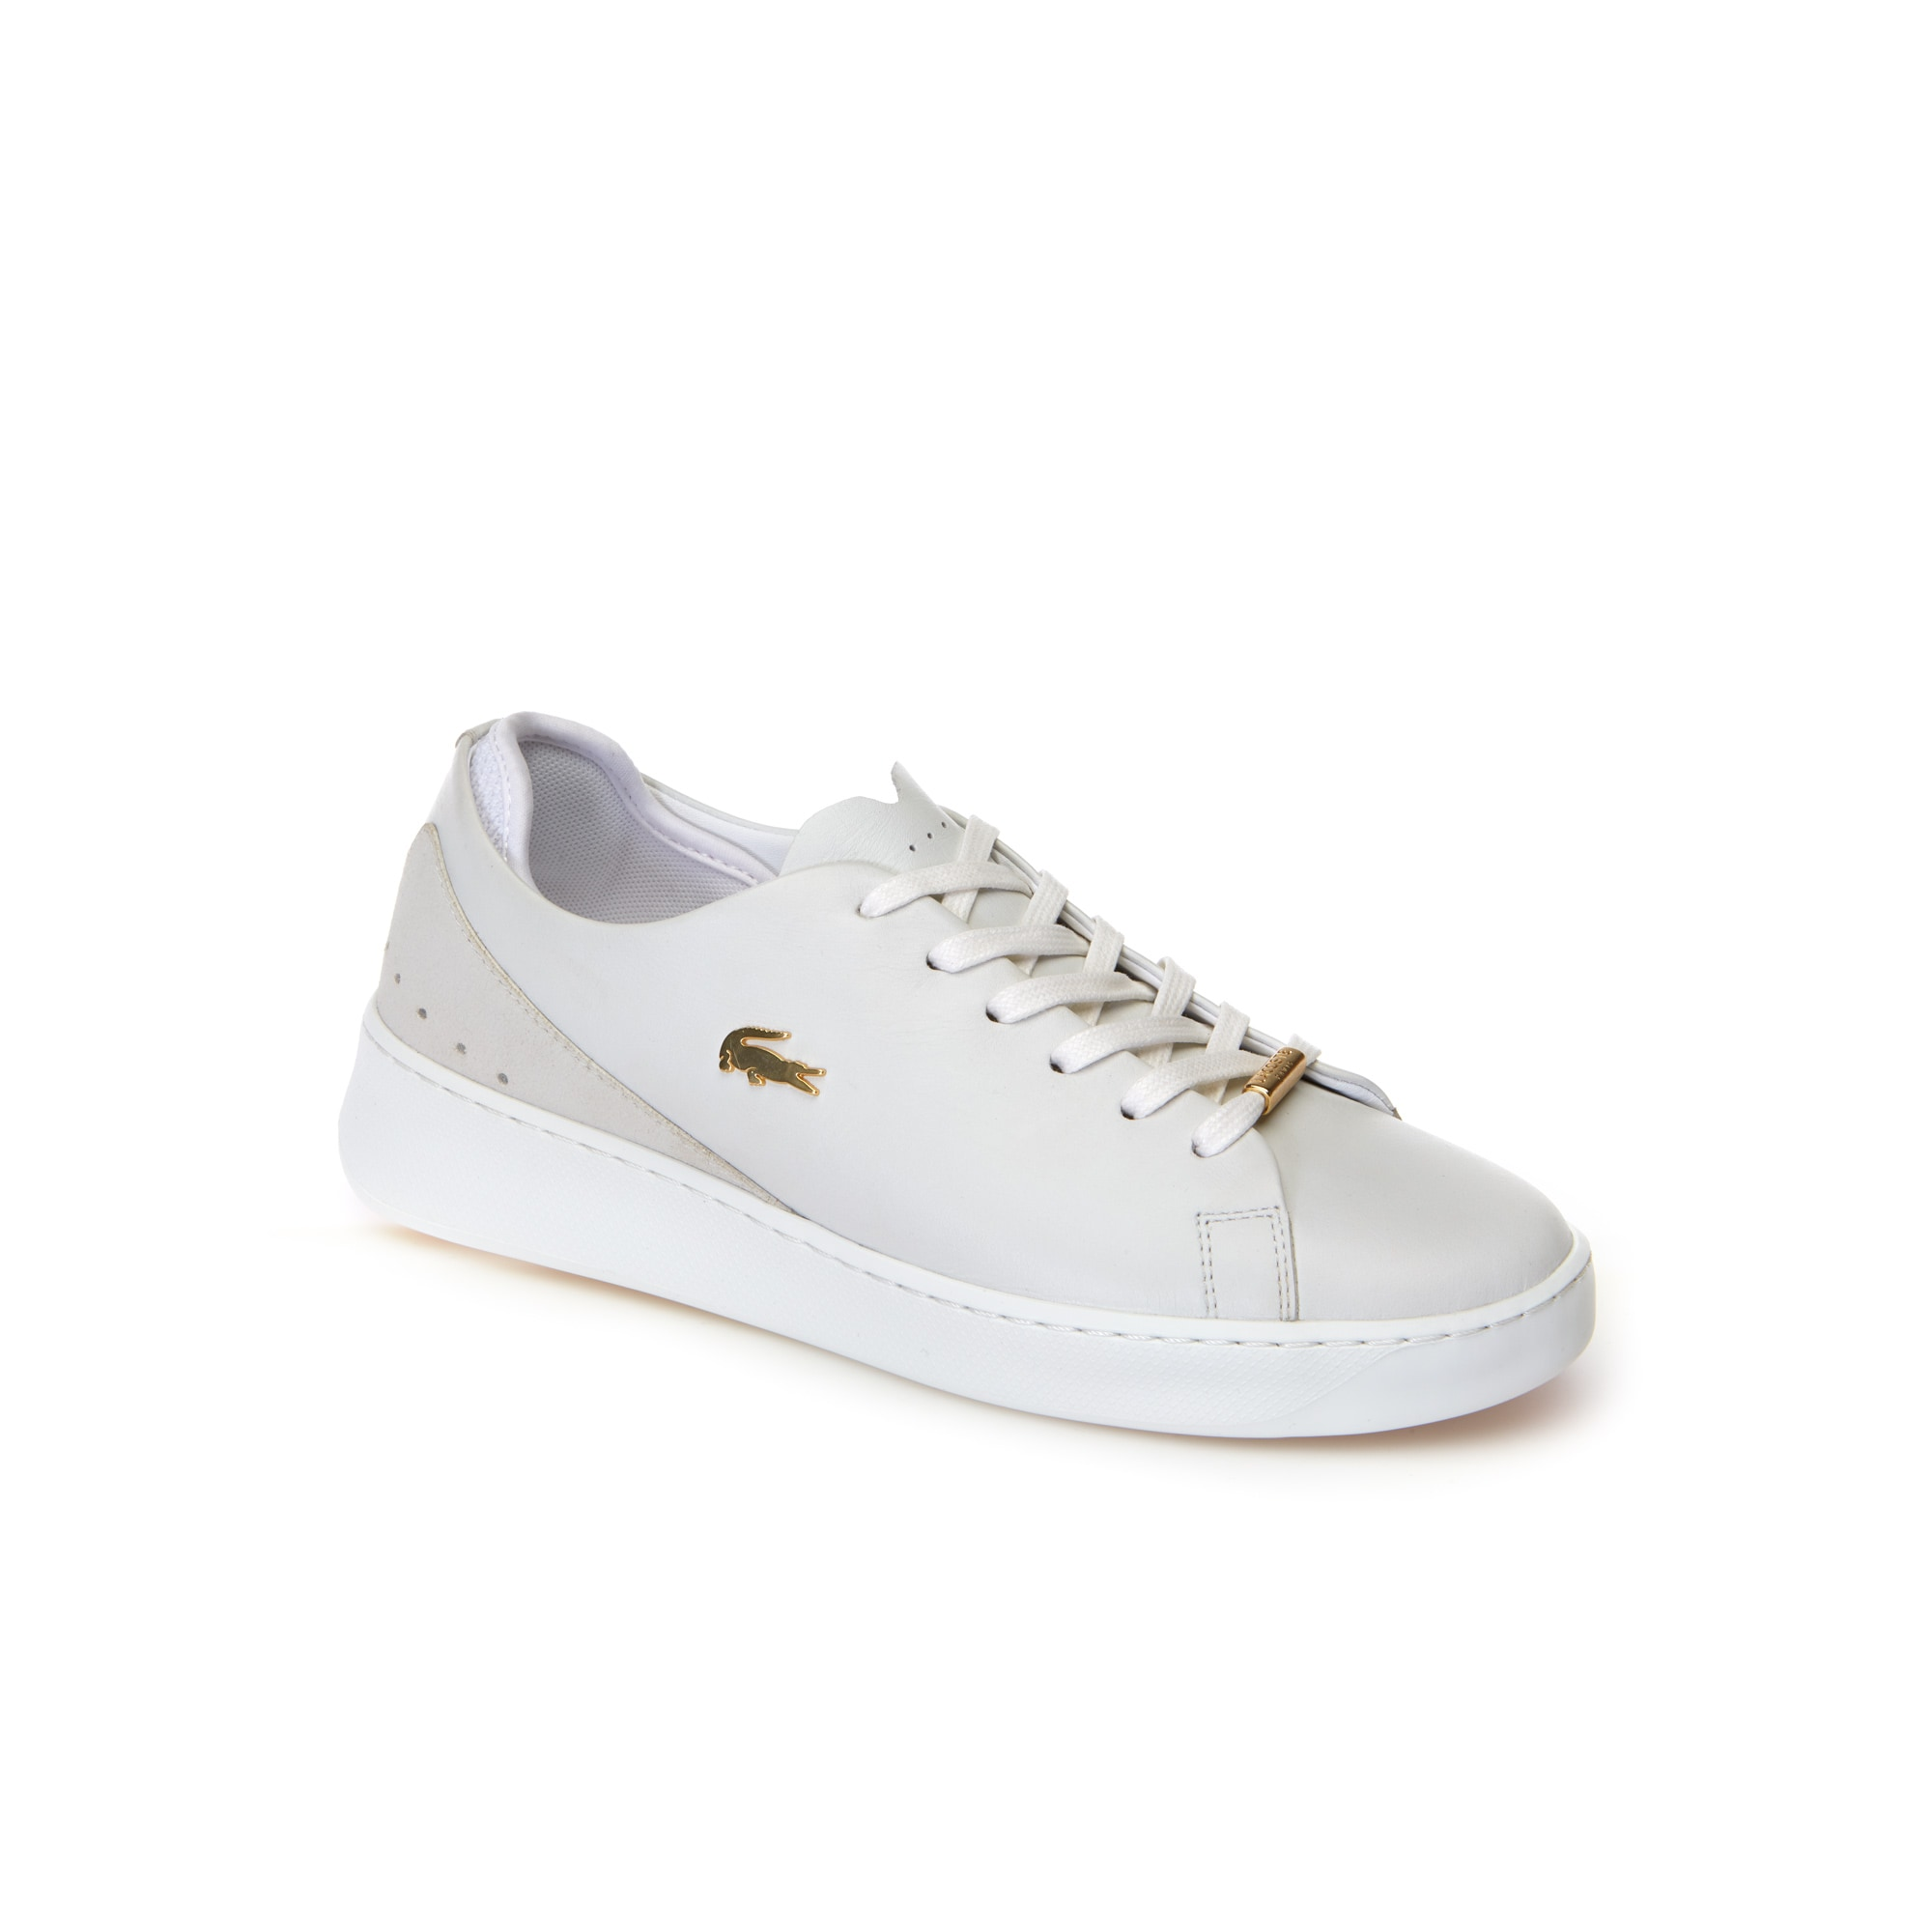 Women's Eyyla Leather and Suede Trainers